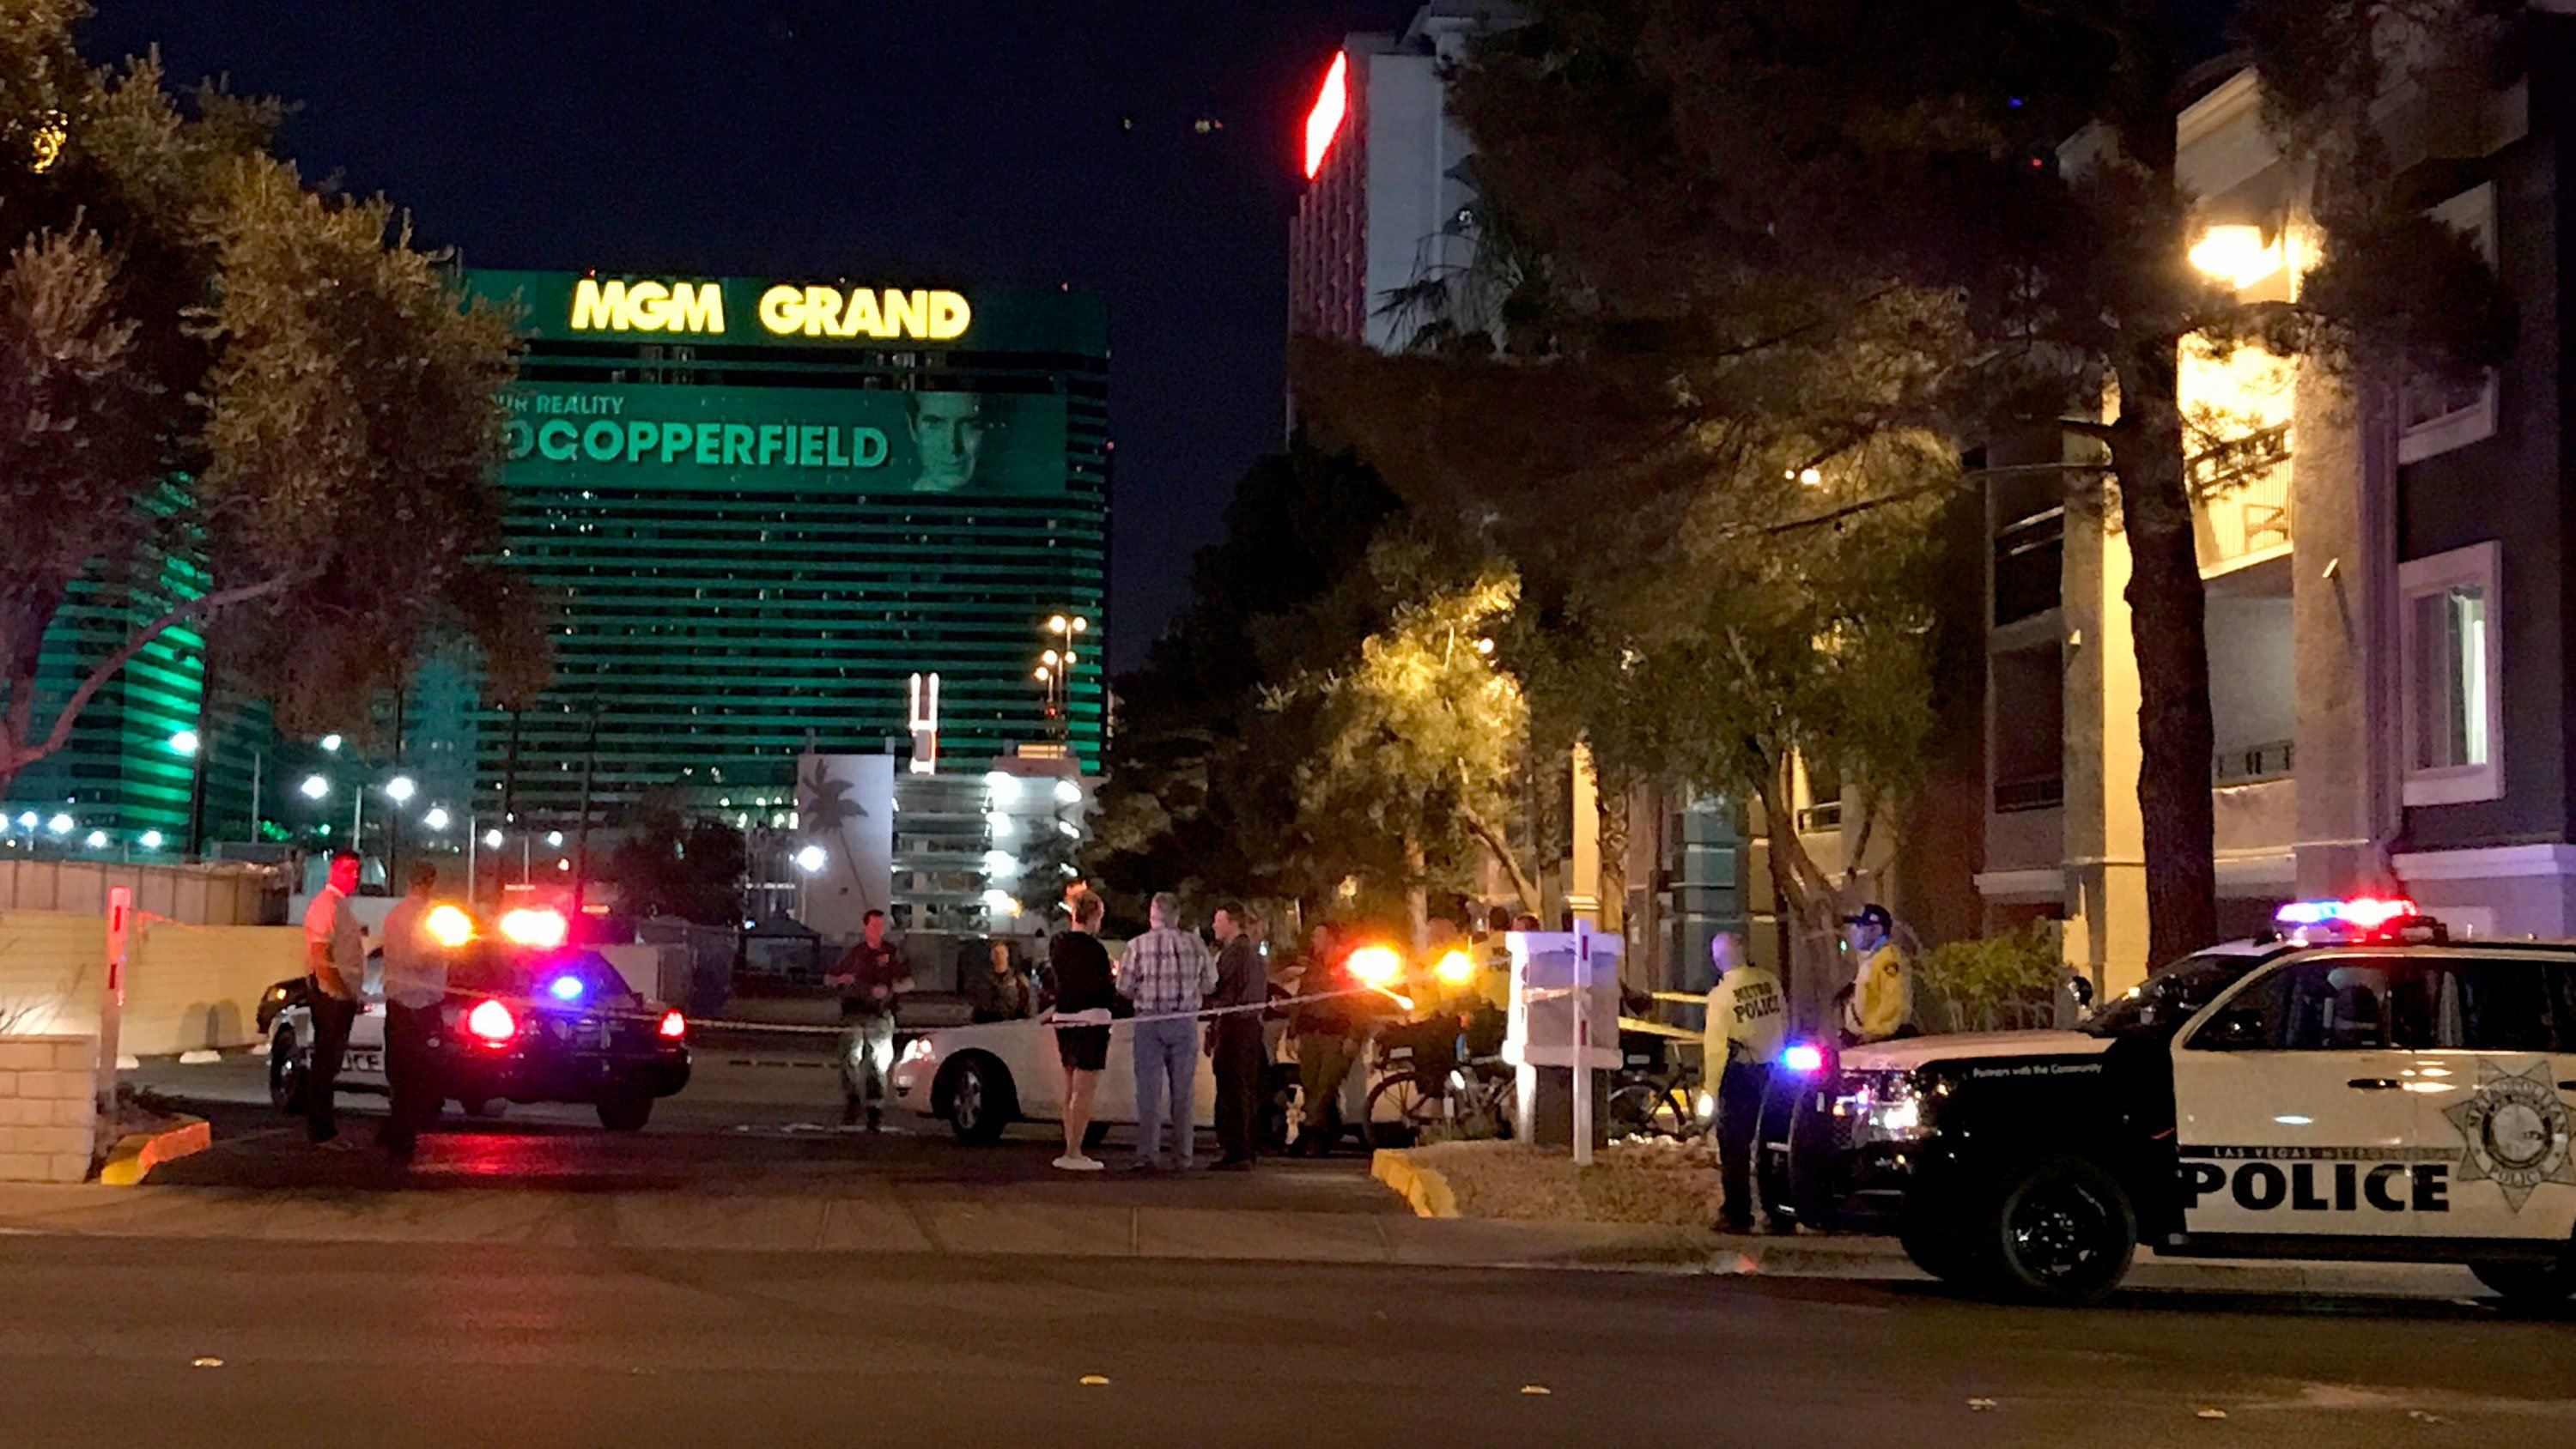 Las Vegas Metro police said they are investigating a suspicious device on June 22, 2017. (Gai Phanalasy/FOX5)